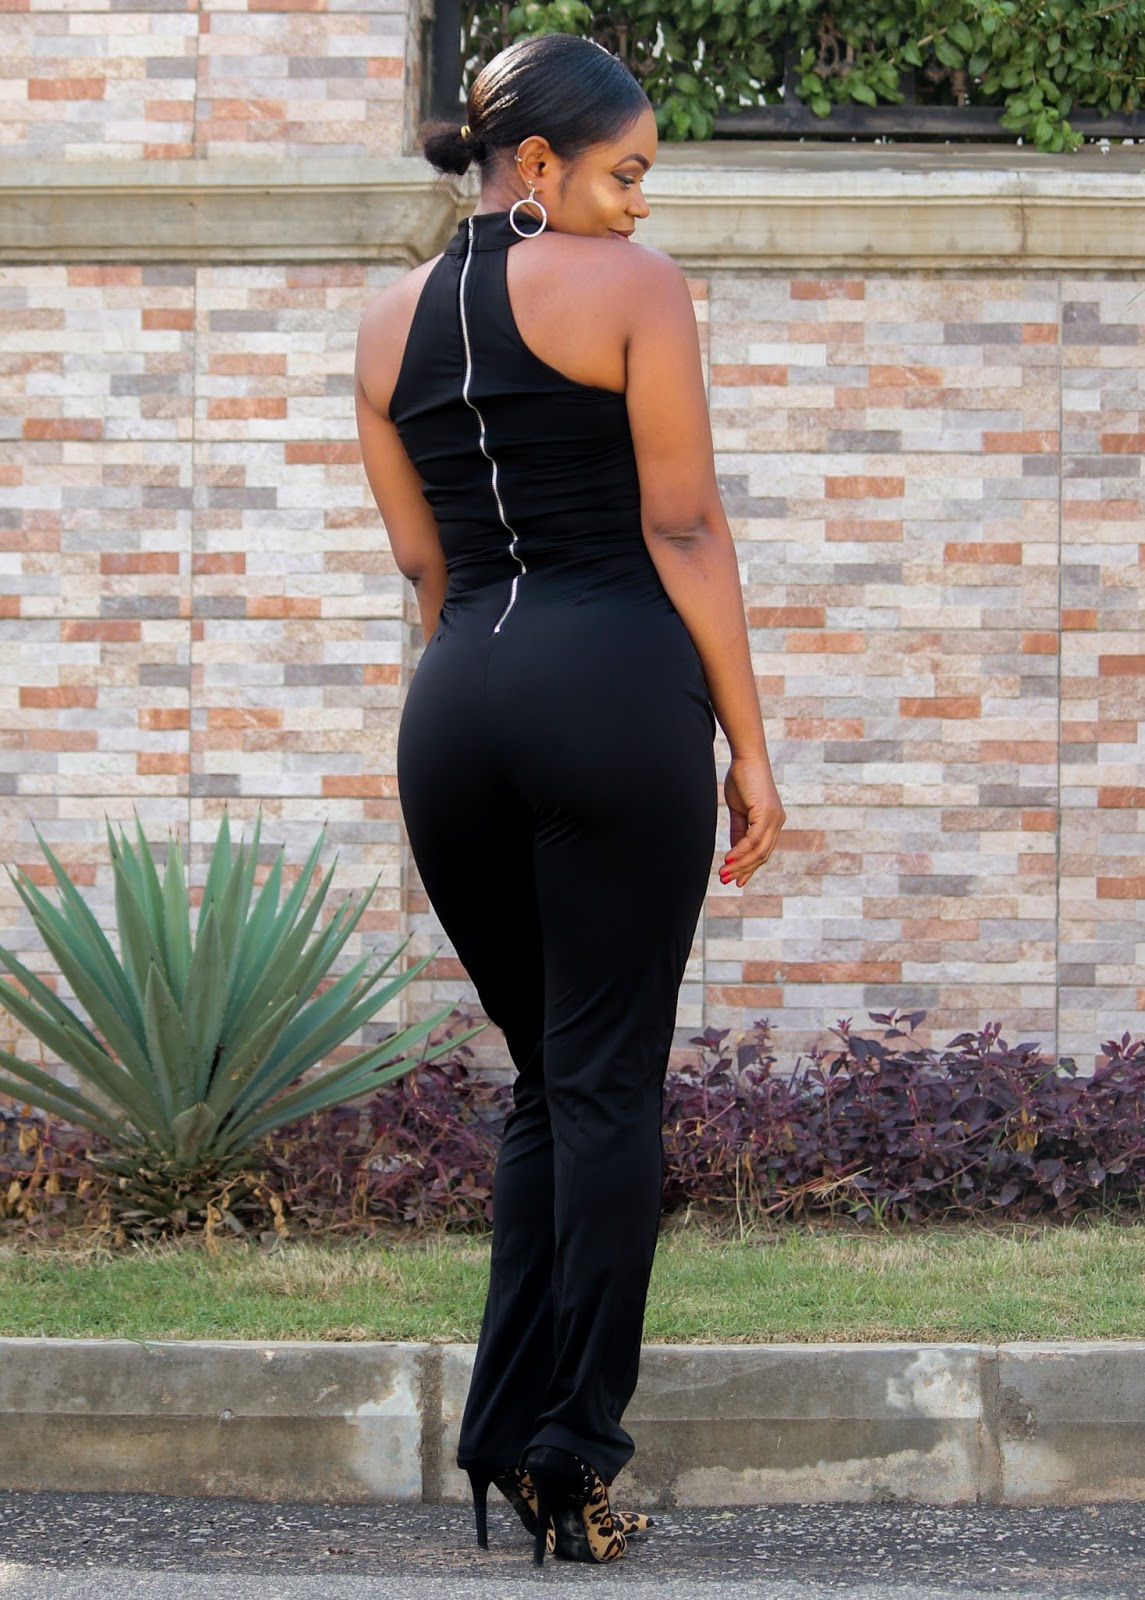 ZAFUL BLACK JUMPSUIT - Black Jumpsuit with cut-out neck detail from Zaful